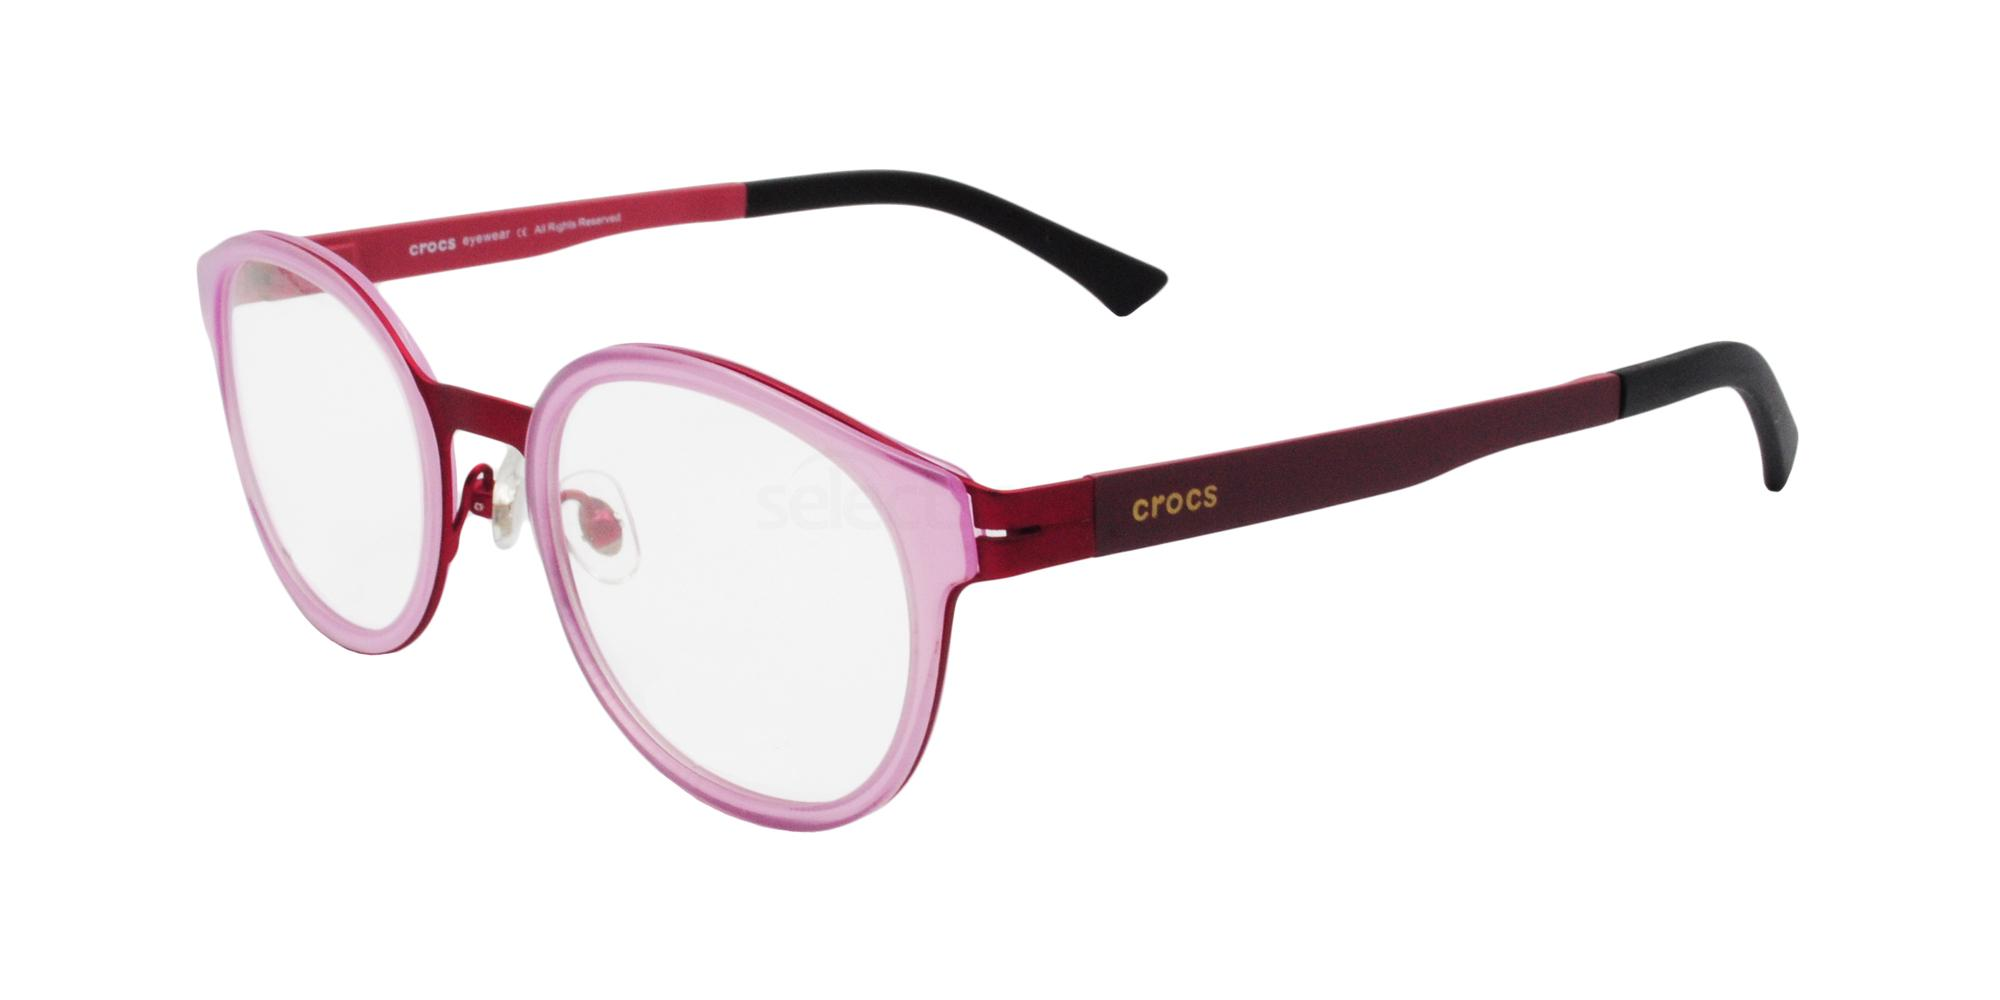 15PK CF4000 Glasses, Crocs Eyewear